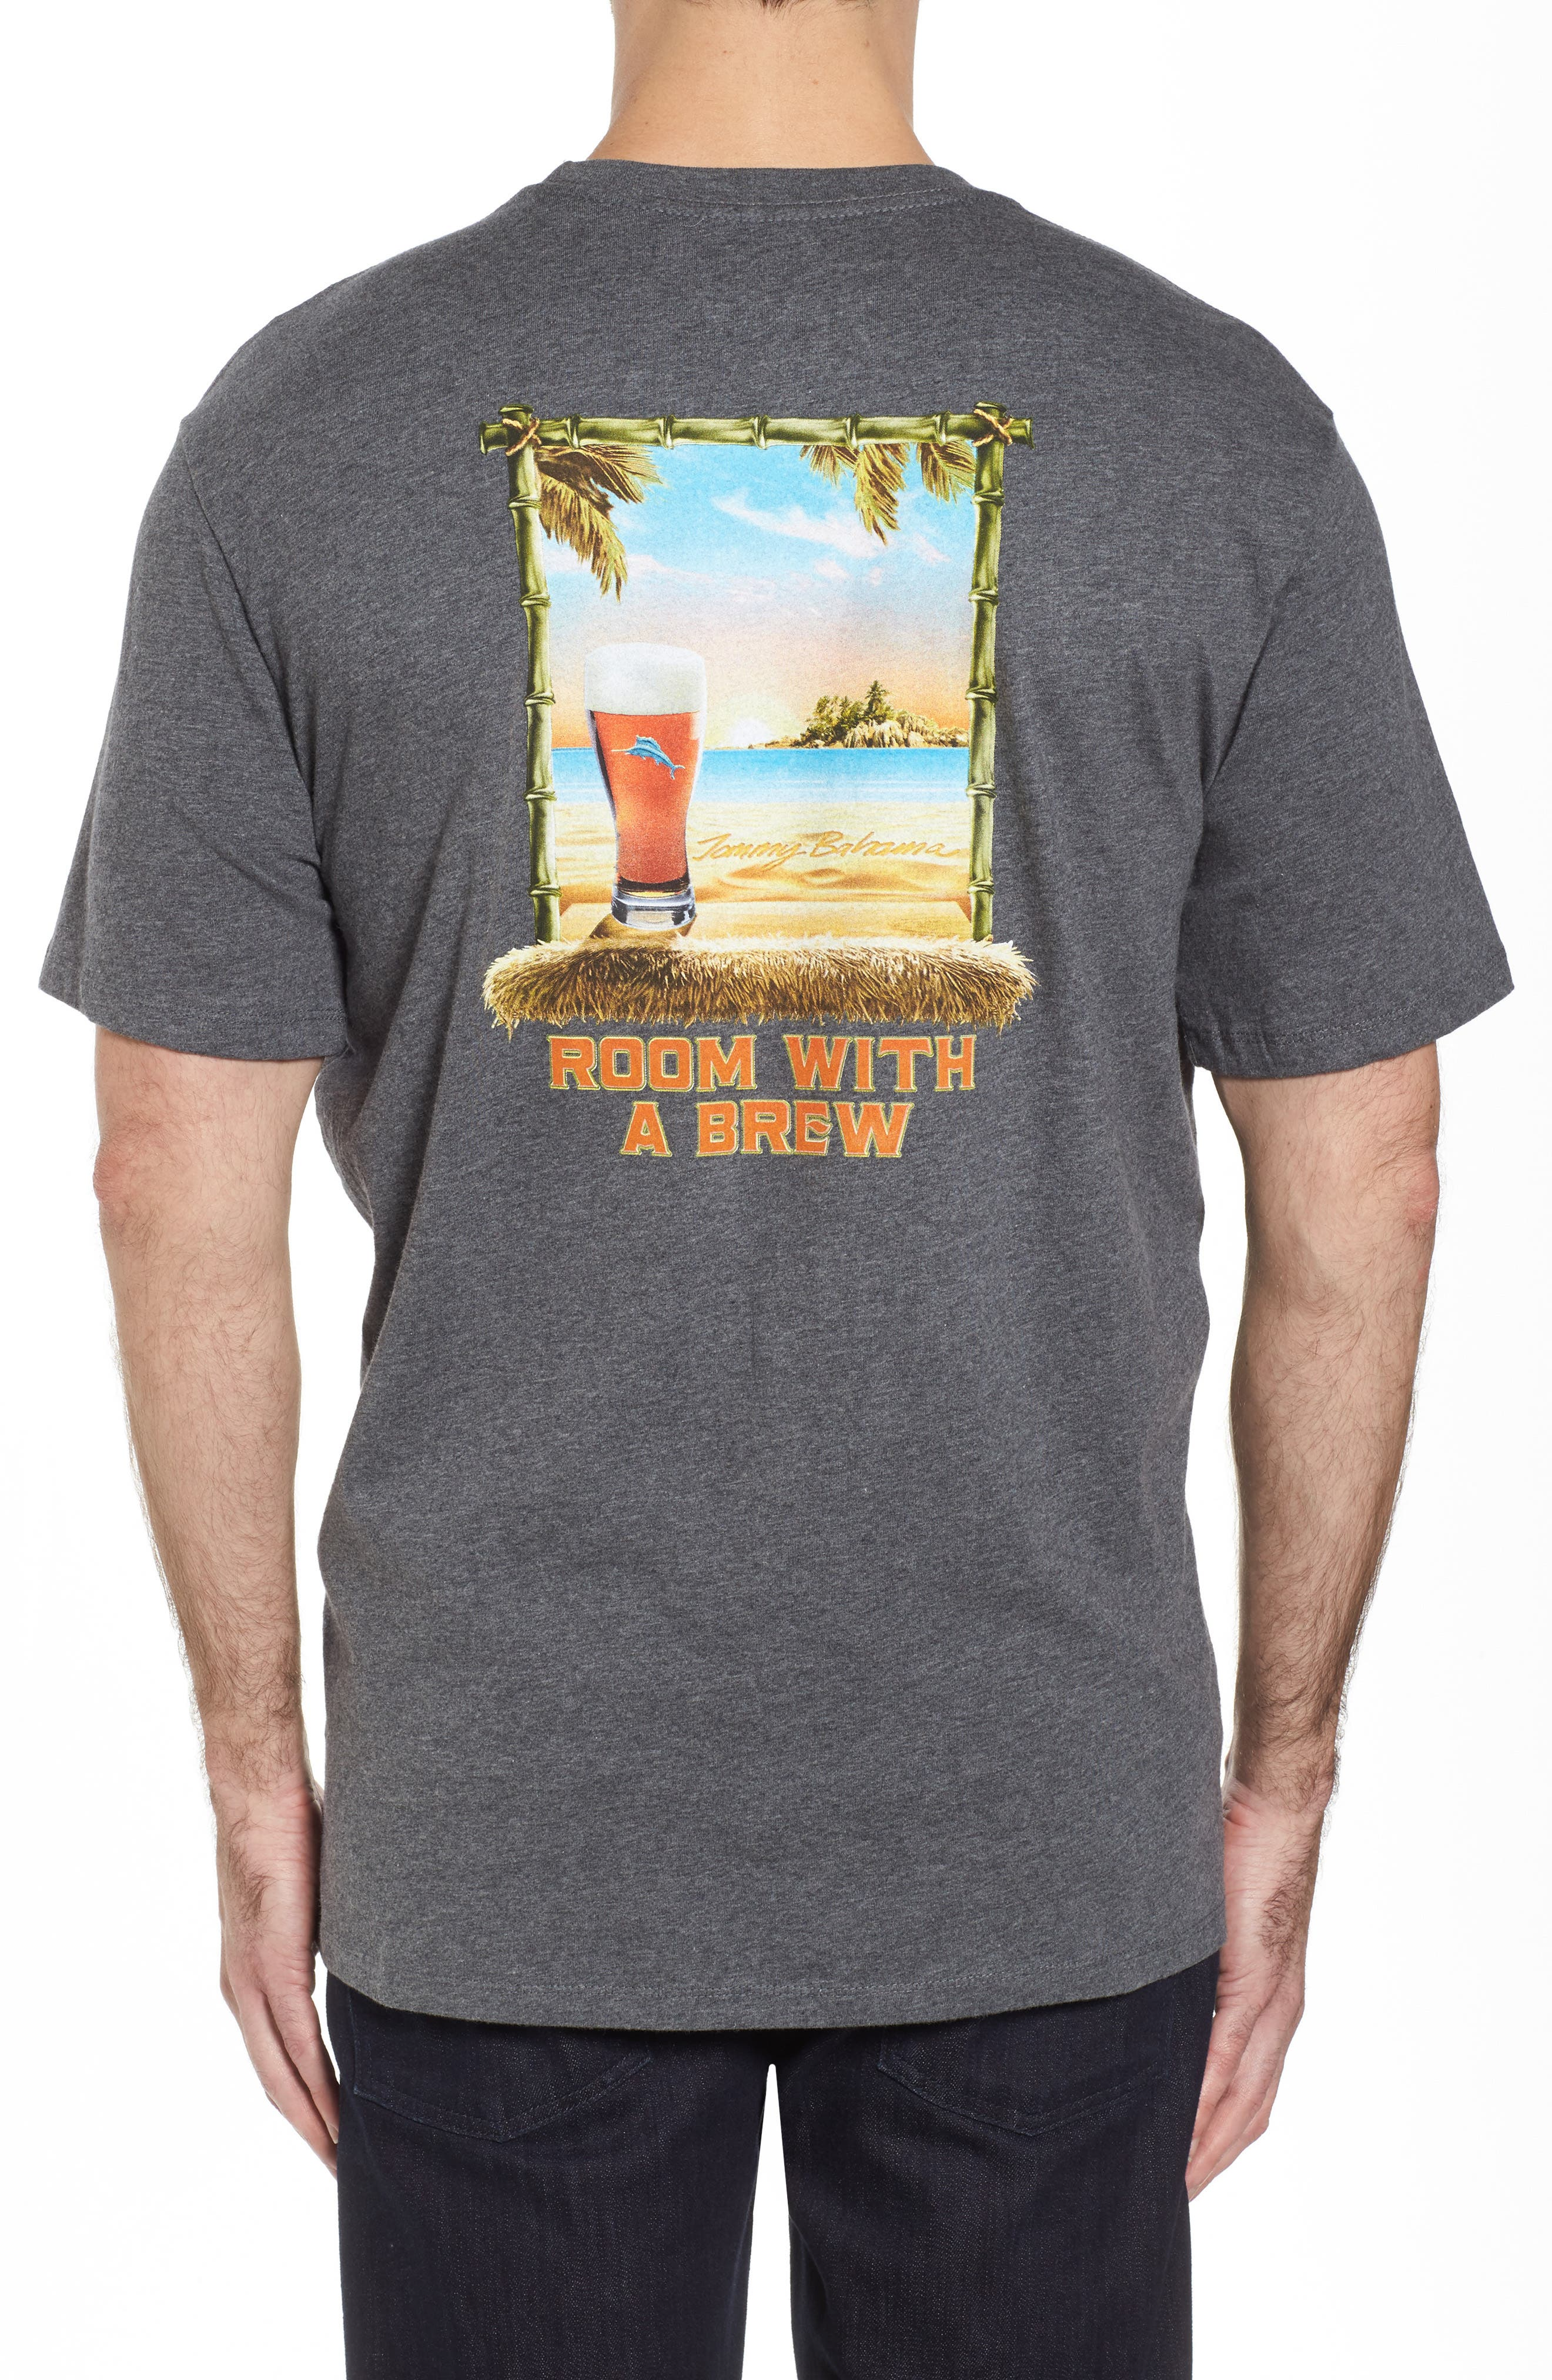 Tommy Bahama Room with a Brew T-Shirt